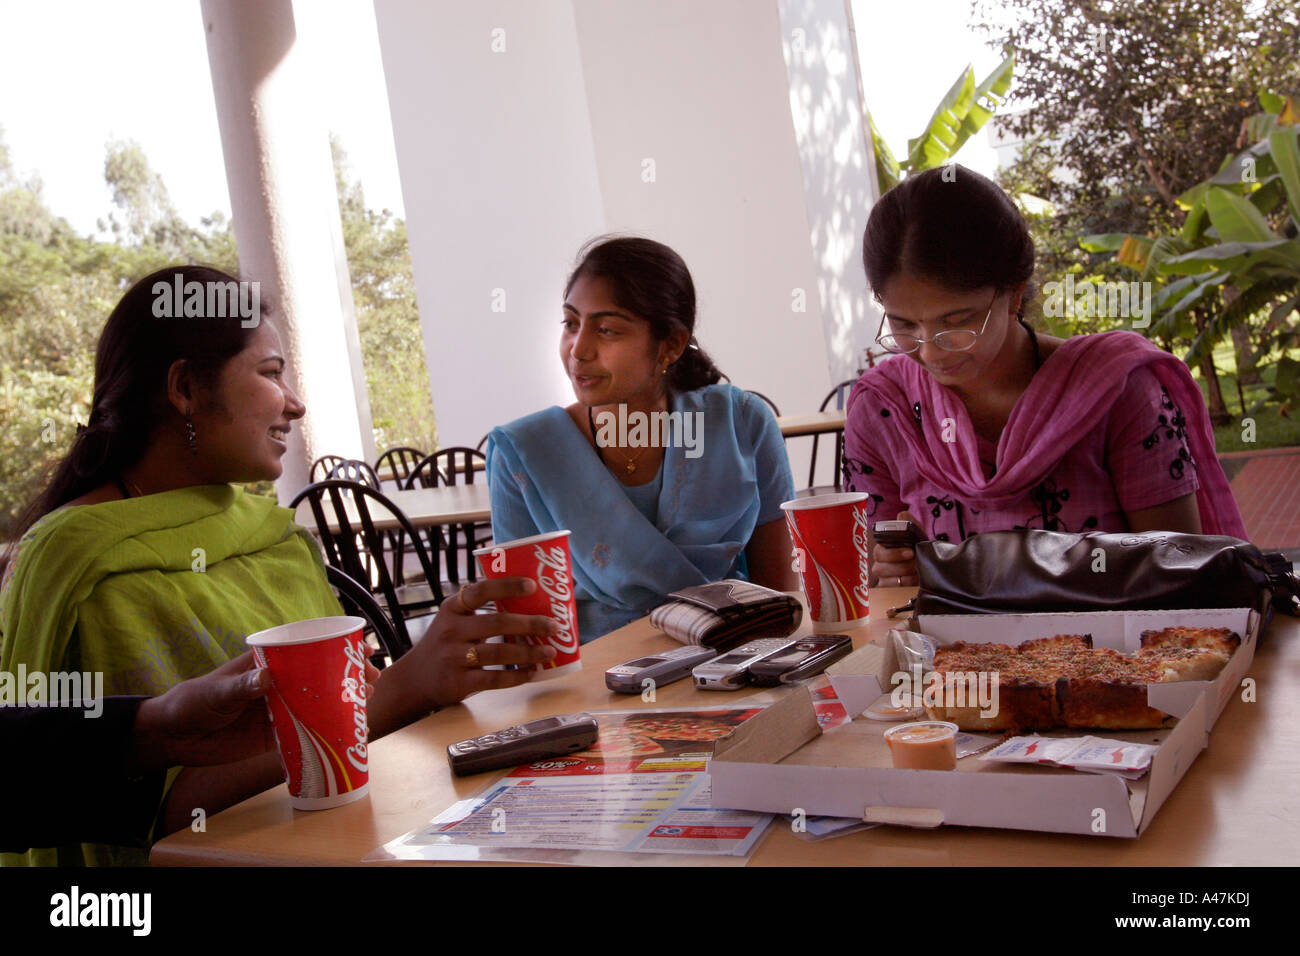 Young Indian women who works in the IT industry for Infosys eats western fast food during a lunch break in Bangalore in India Stock Photo